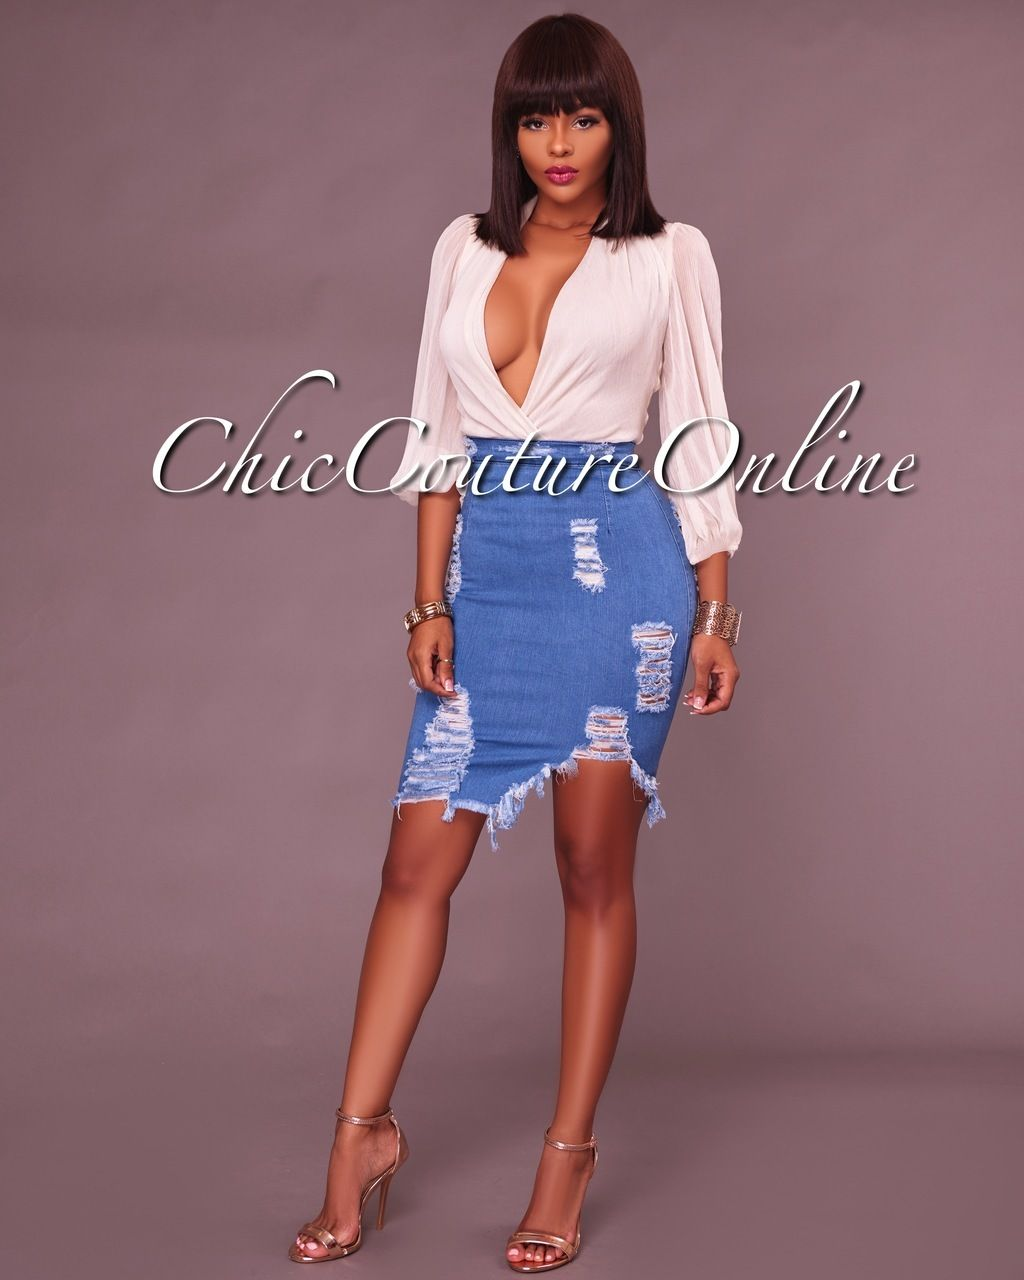 c95e44bfcc78 Pin by Chic Couture Online on Clothing ~ Chic Couture Online in 2019 ...